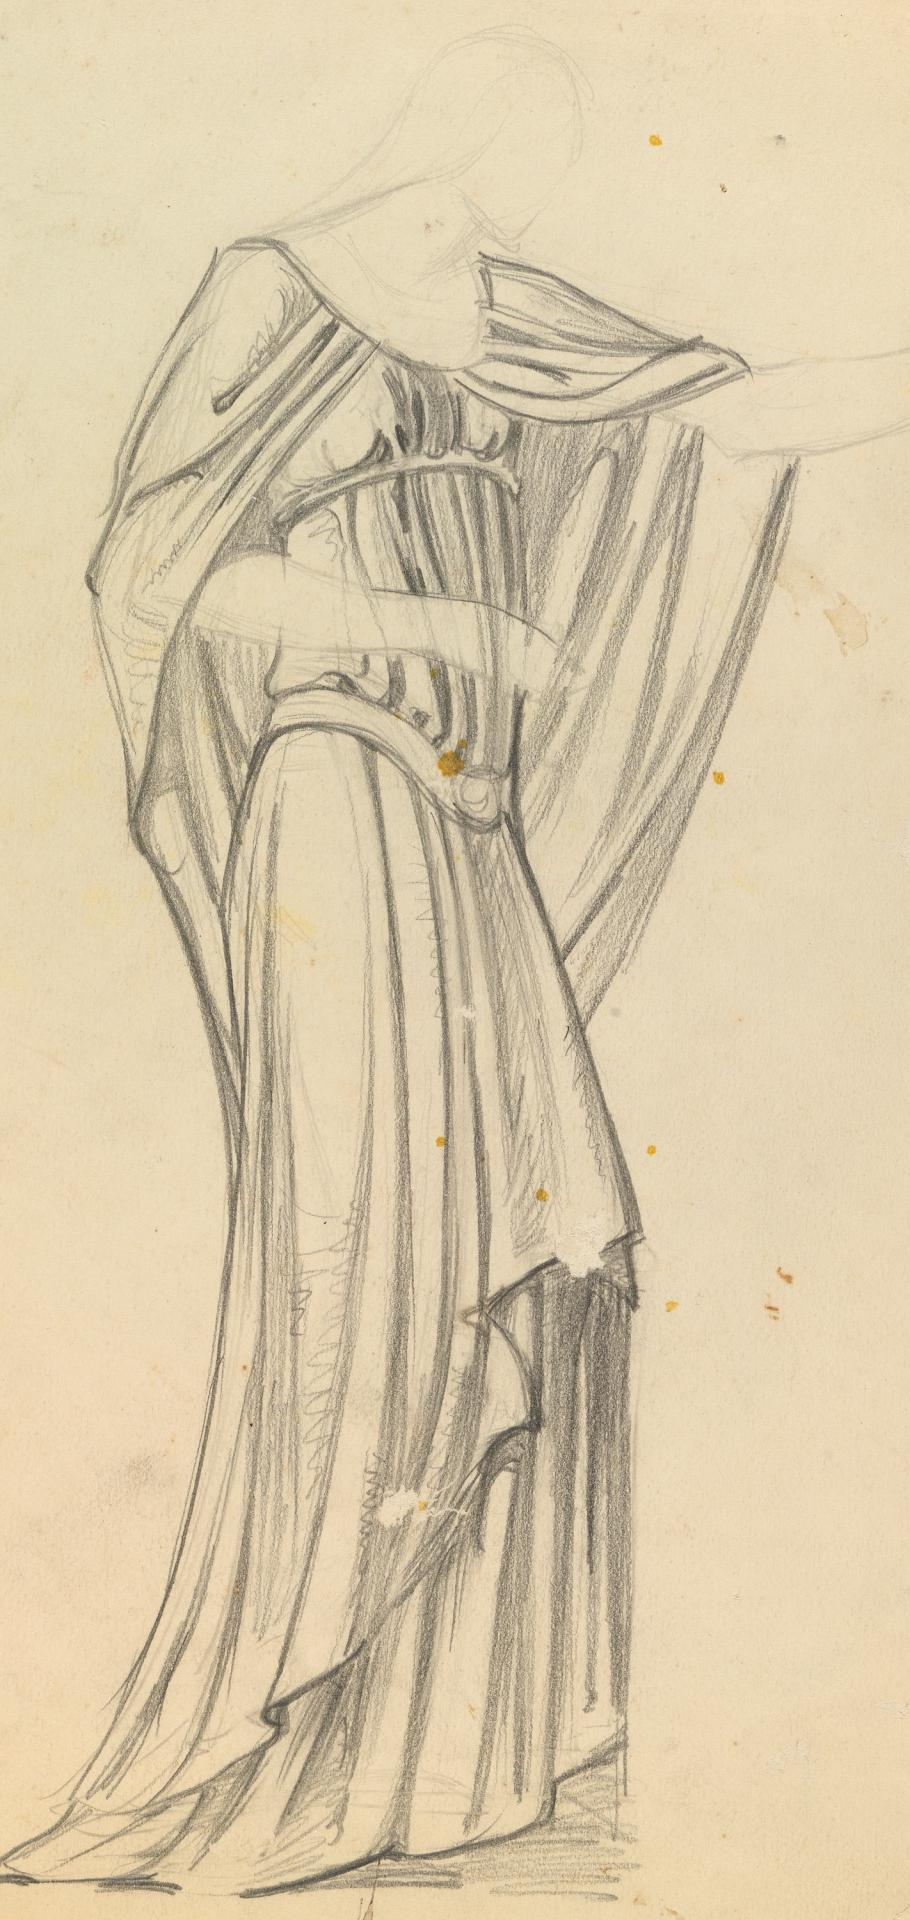 Opera costume sketch for Myer murals, Patti as Aida